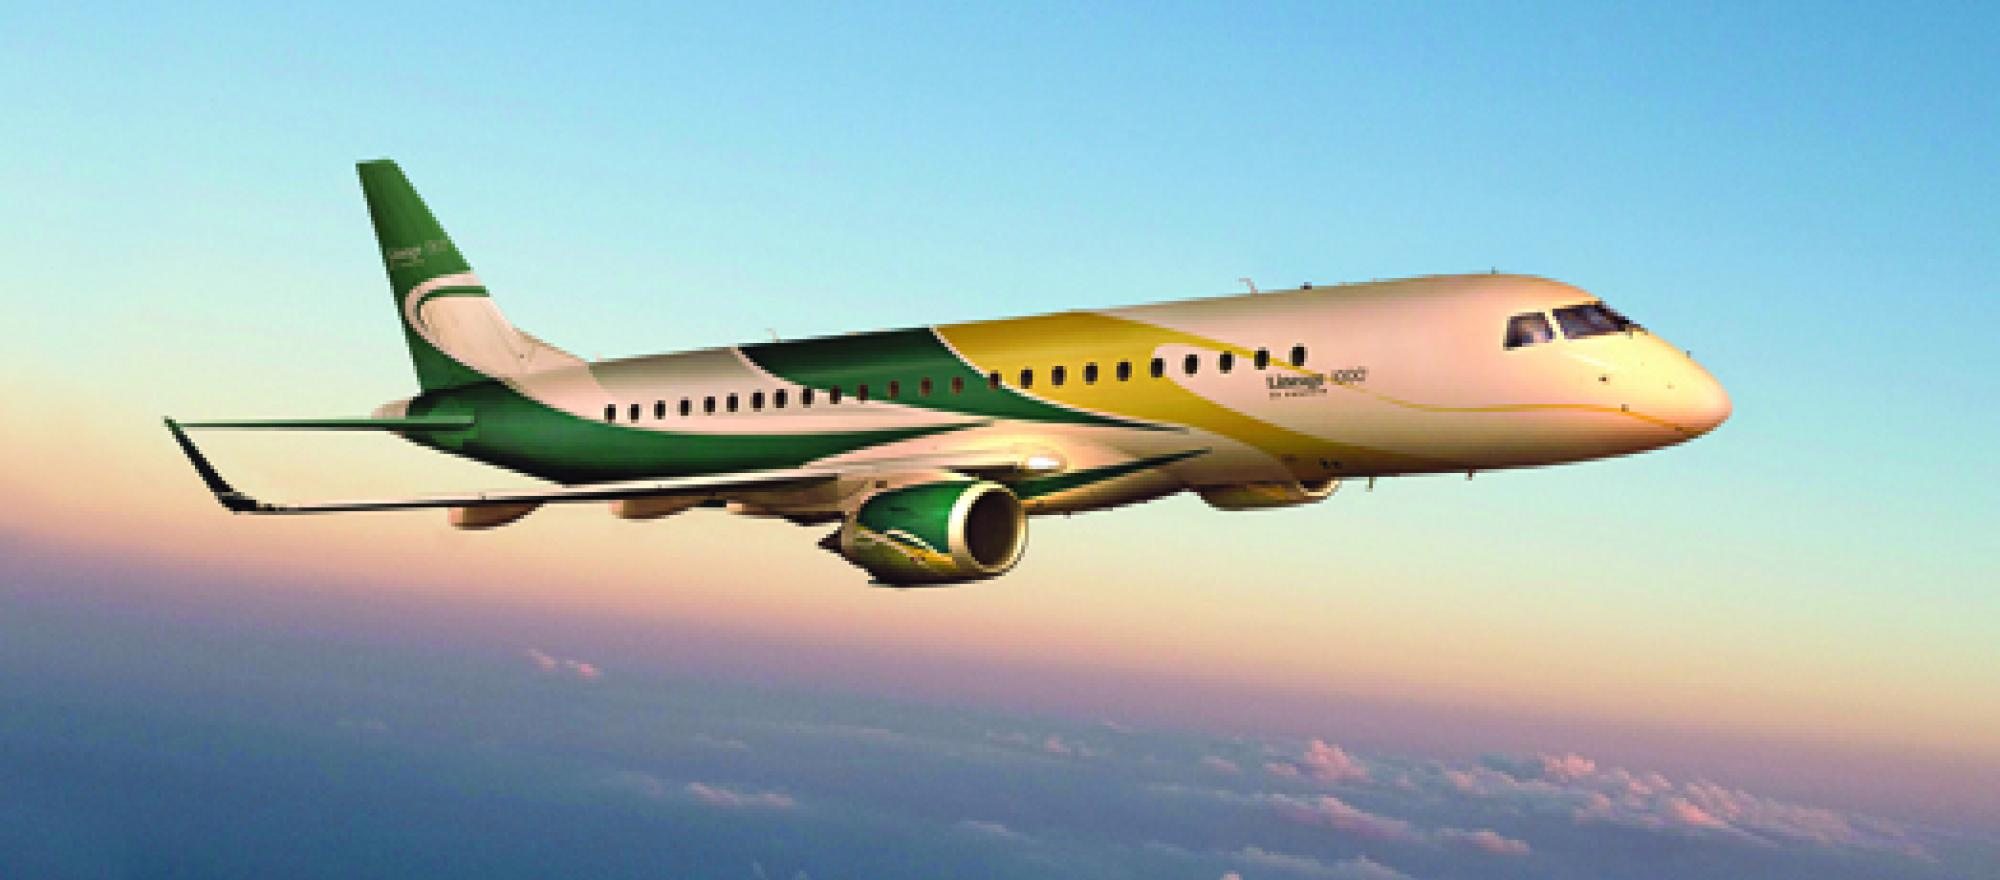 The Lineage 1000 will be able to operate from airports where some of the othe